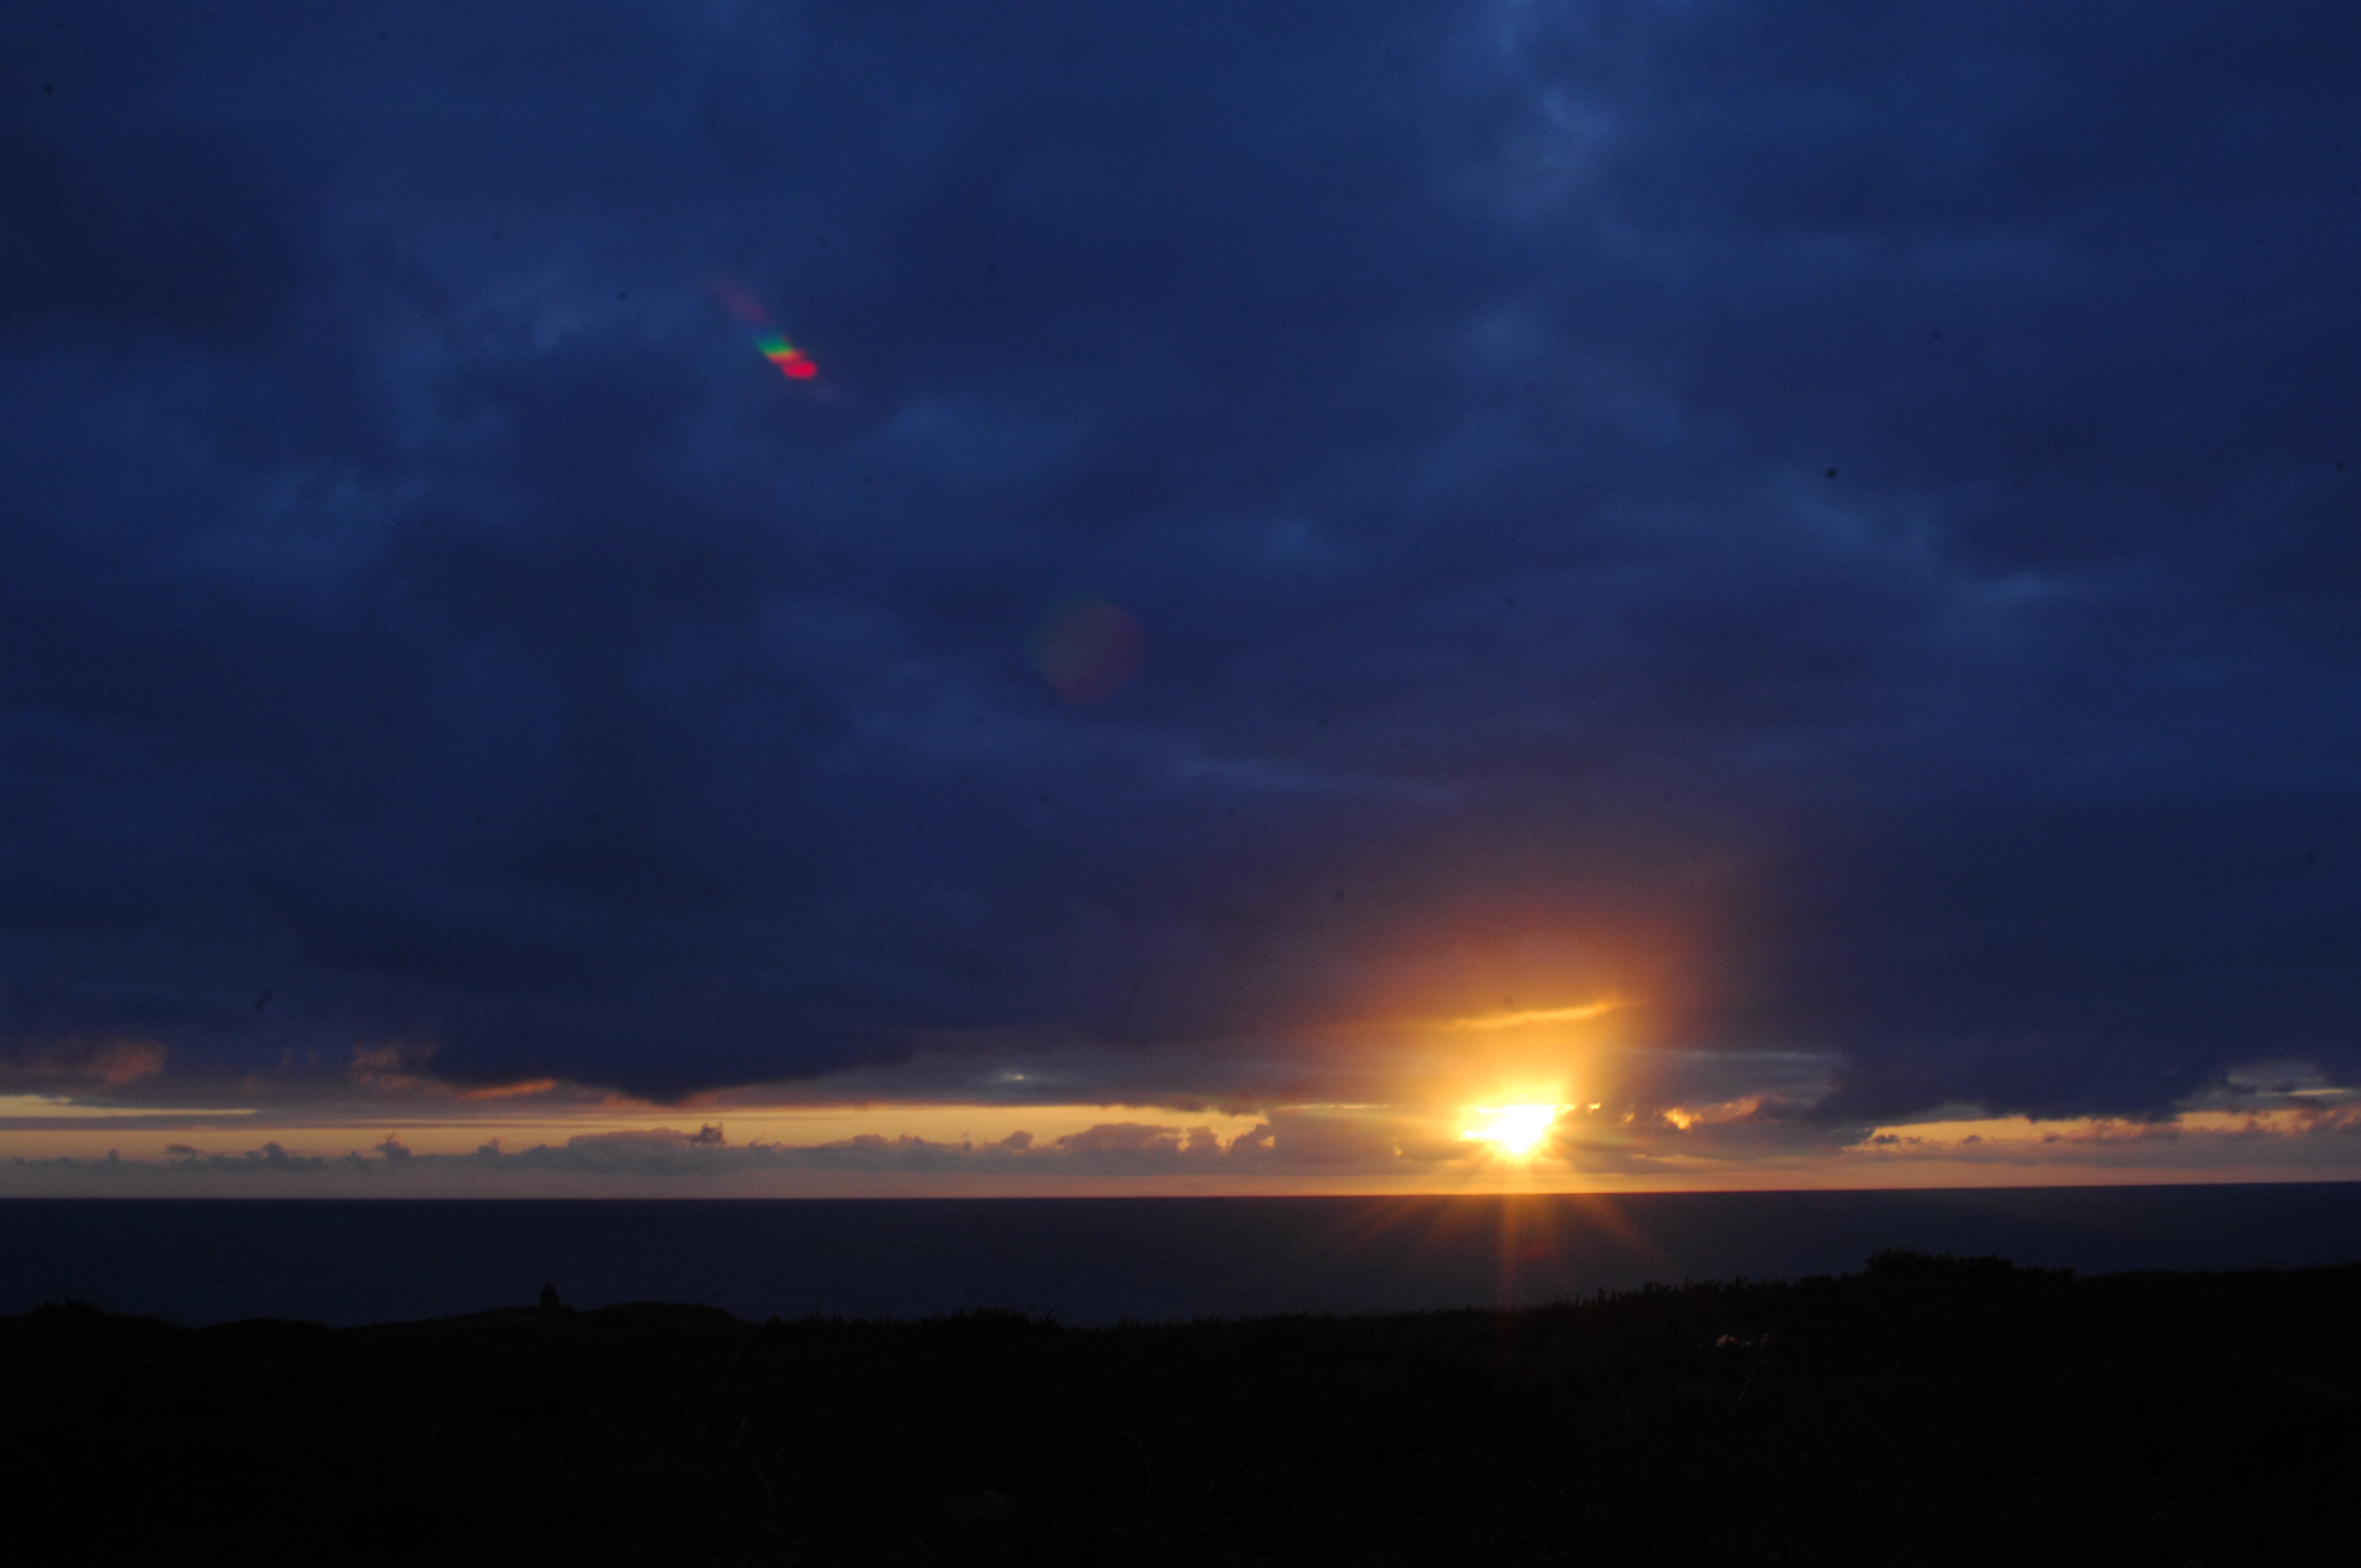 Sunset over the ocean at Widemouth Bay